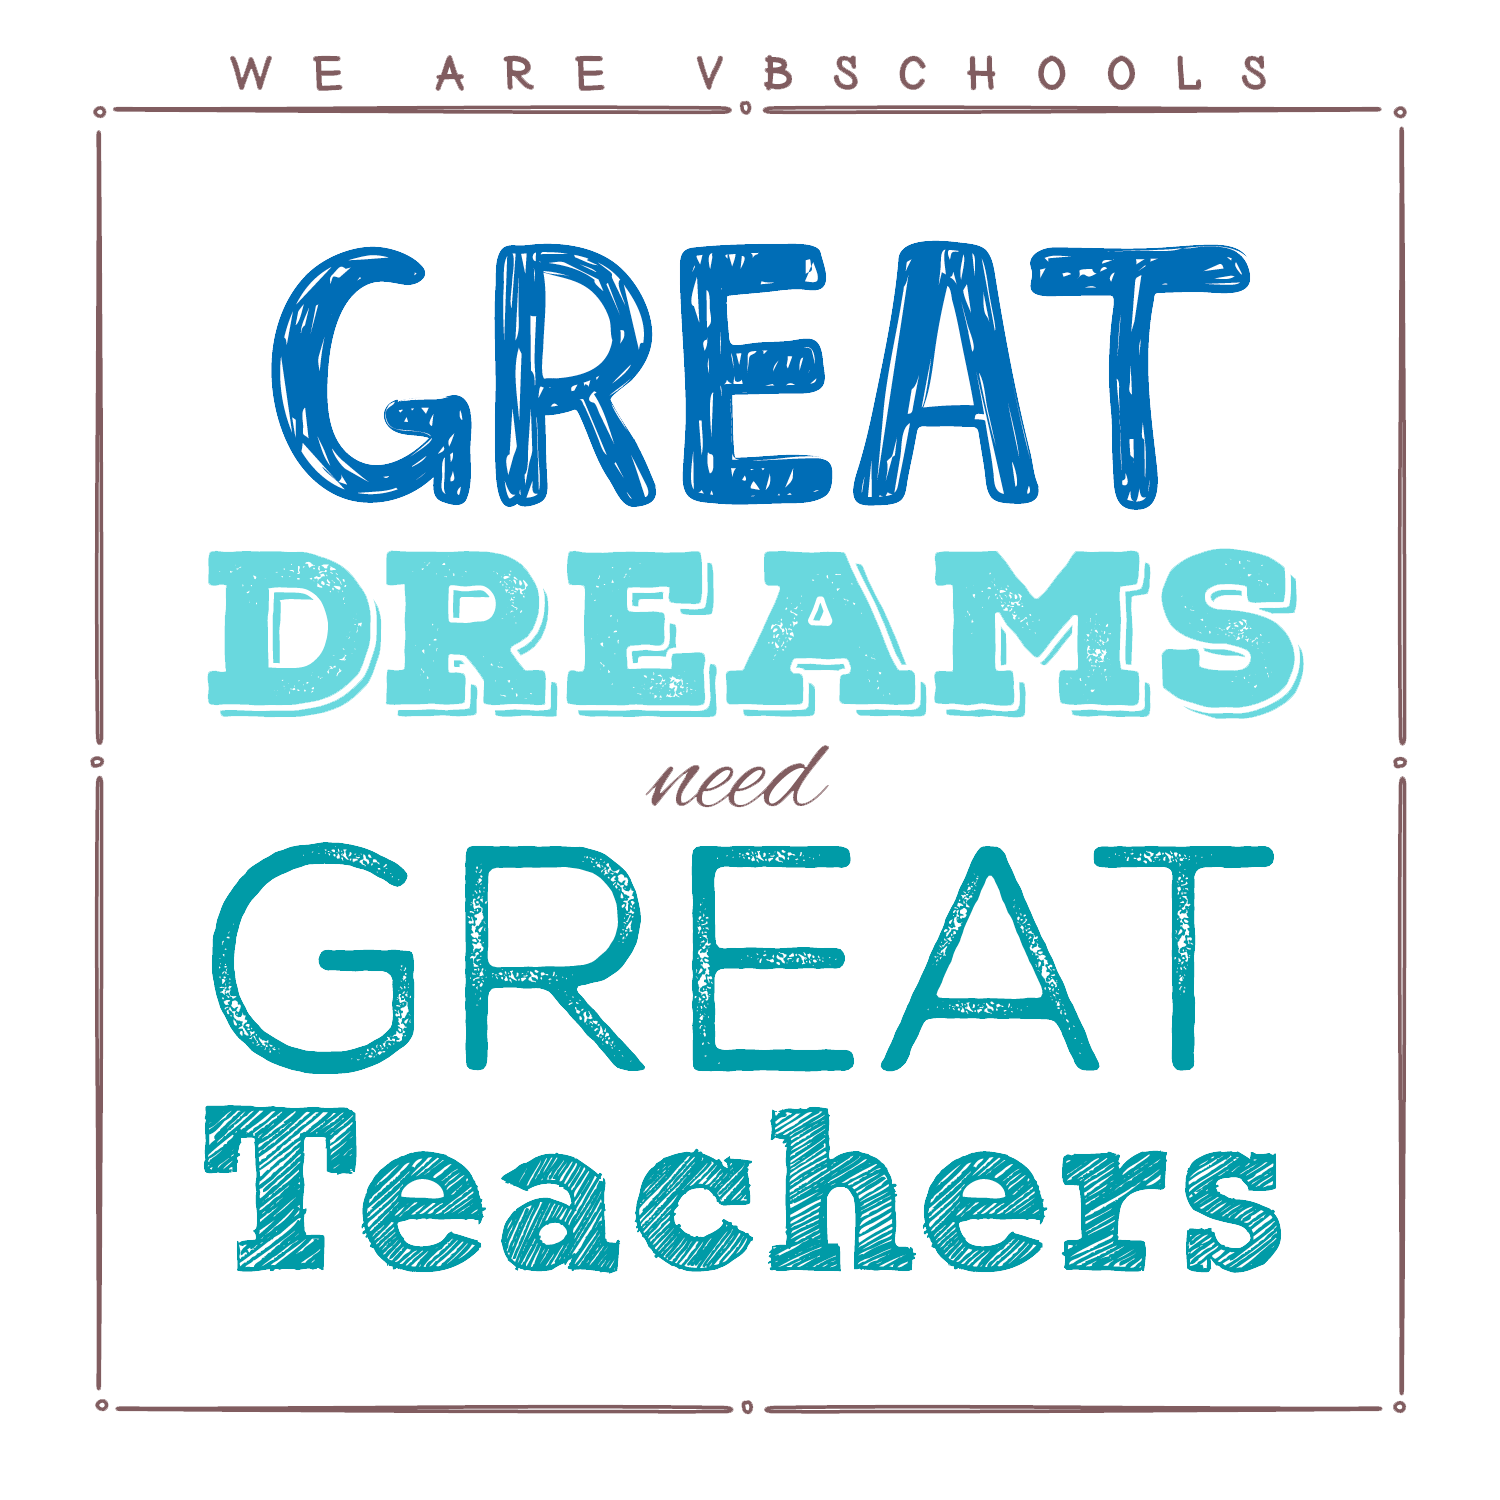 We Are Vbschools  Great Dreams Need Great Teachers We Are Vbschools Great Dreams Need Great Teachers Logo